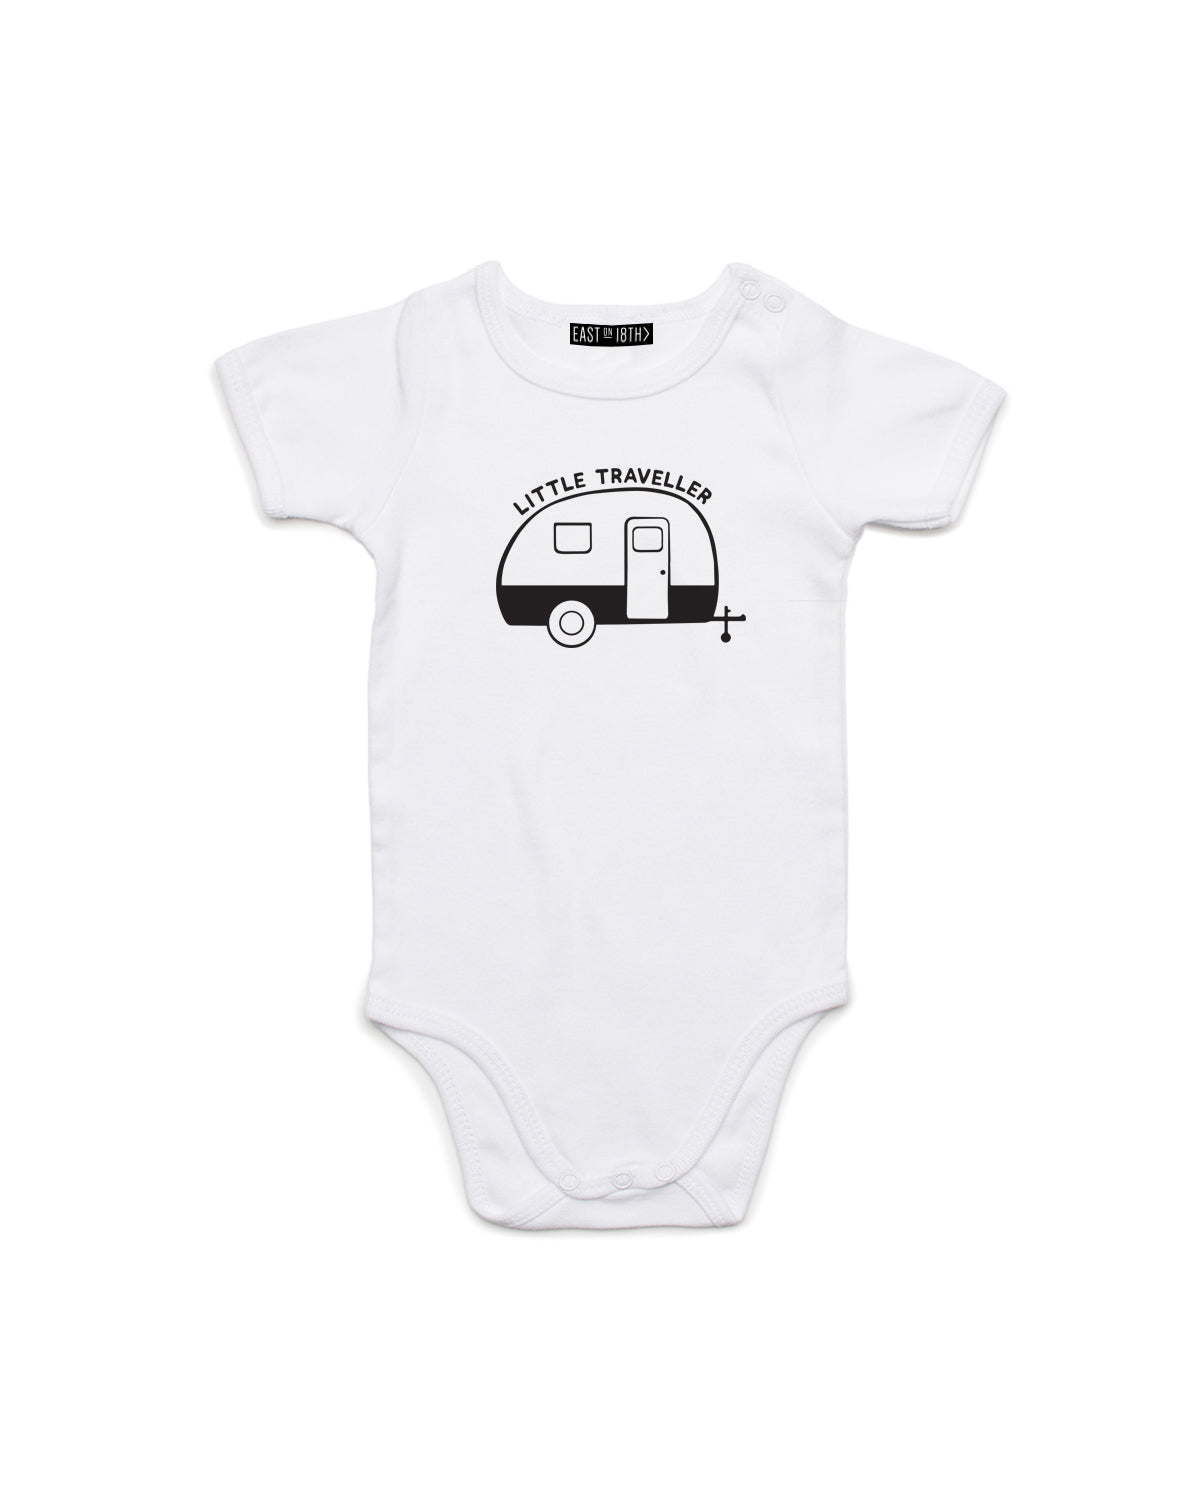 Little Traveller | Baby Bodysuit - Personalised Clothing | EAST ON 18th